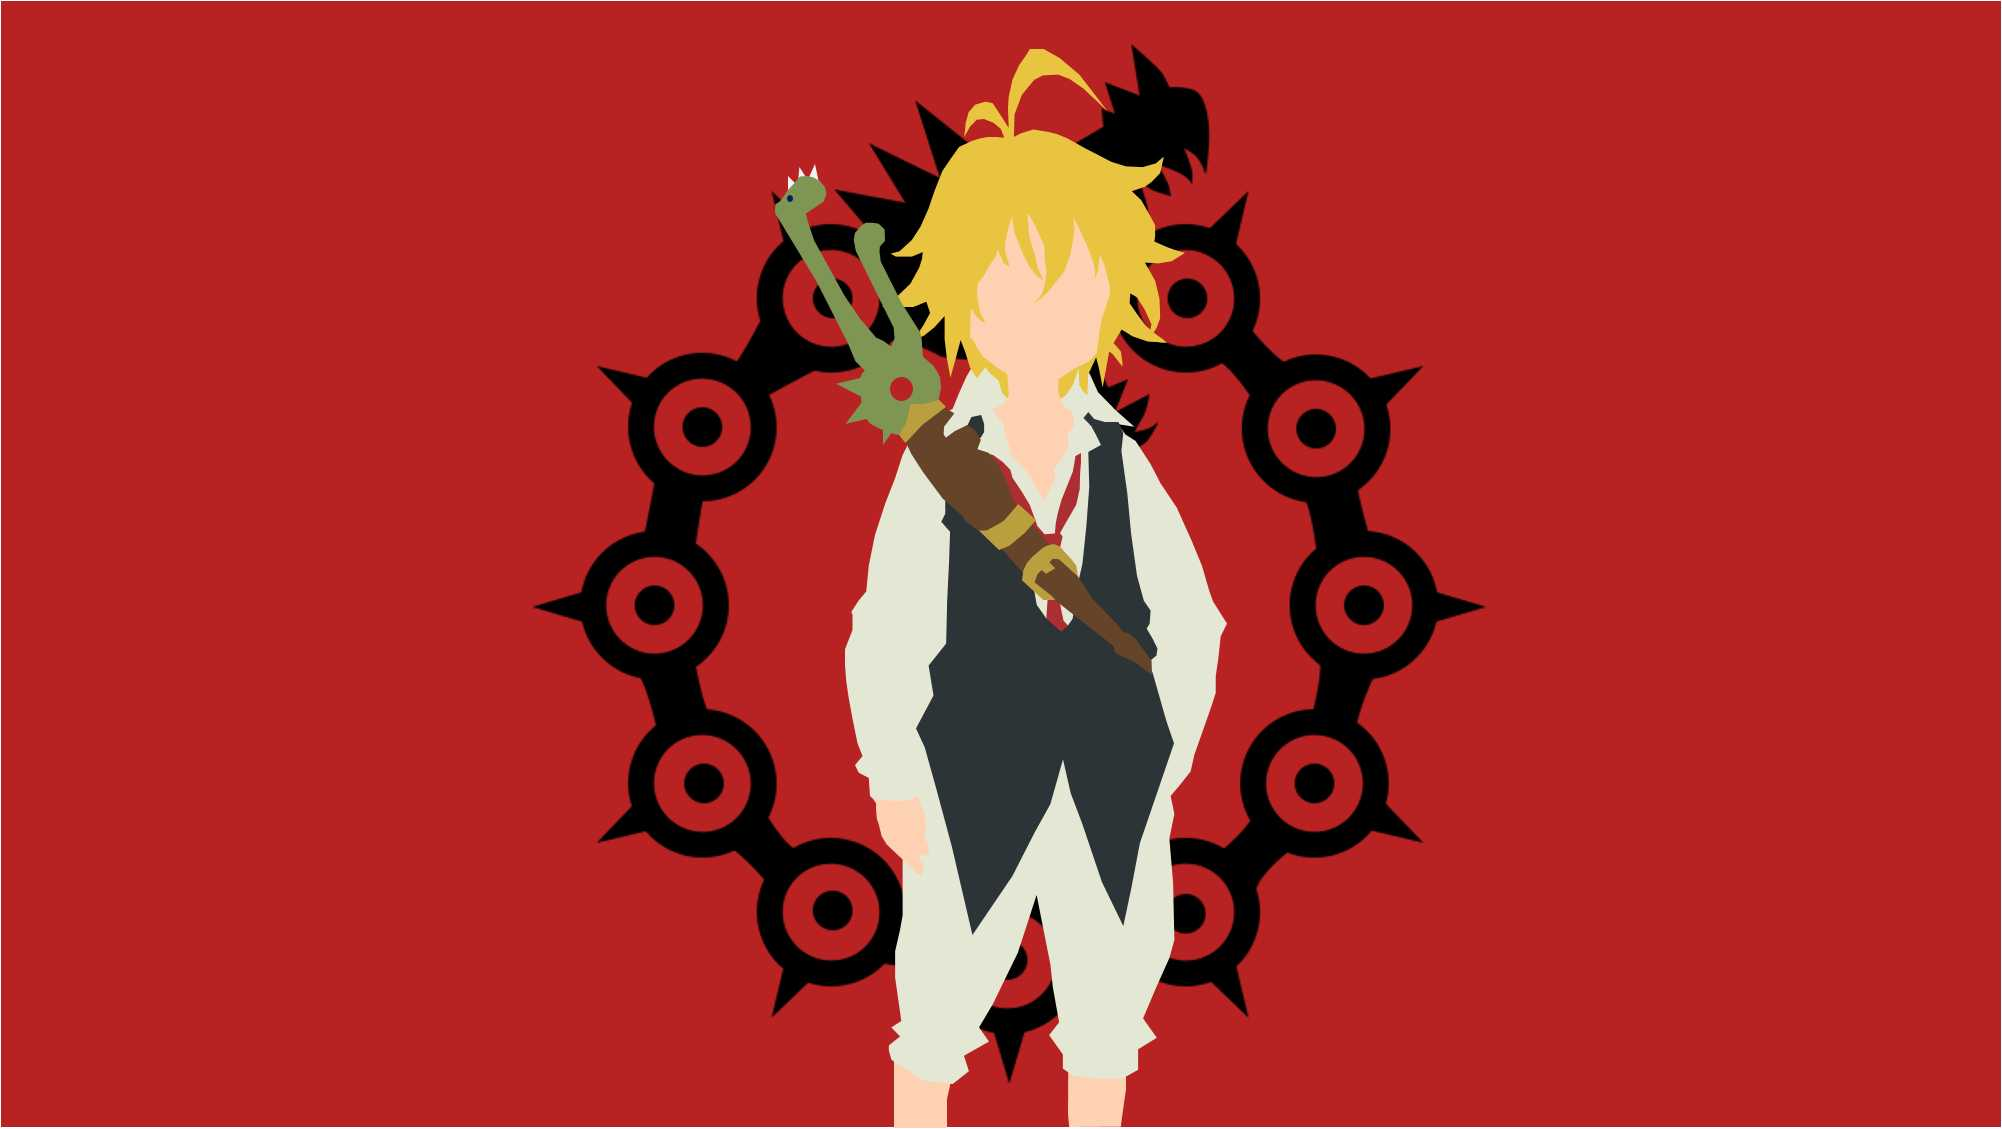 Ban Seven Deadly Sins Wallpaper Posted By Michelle Peltier